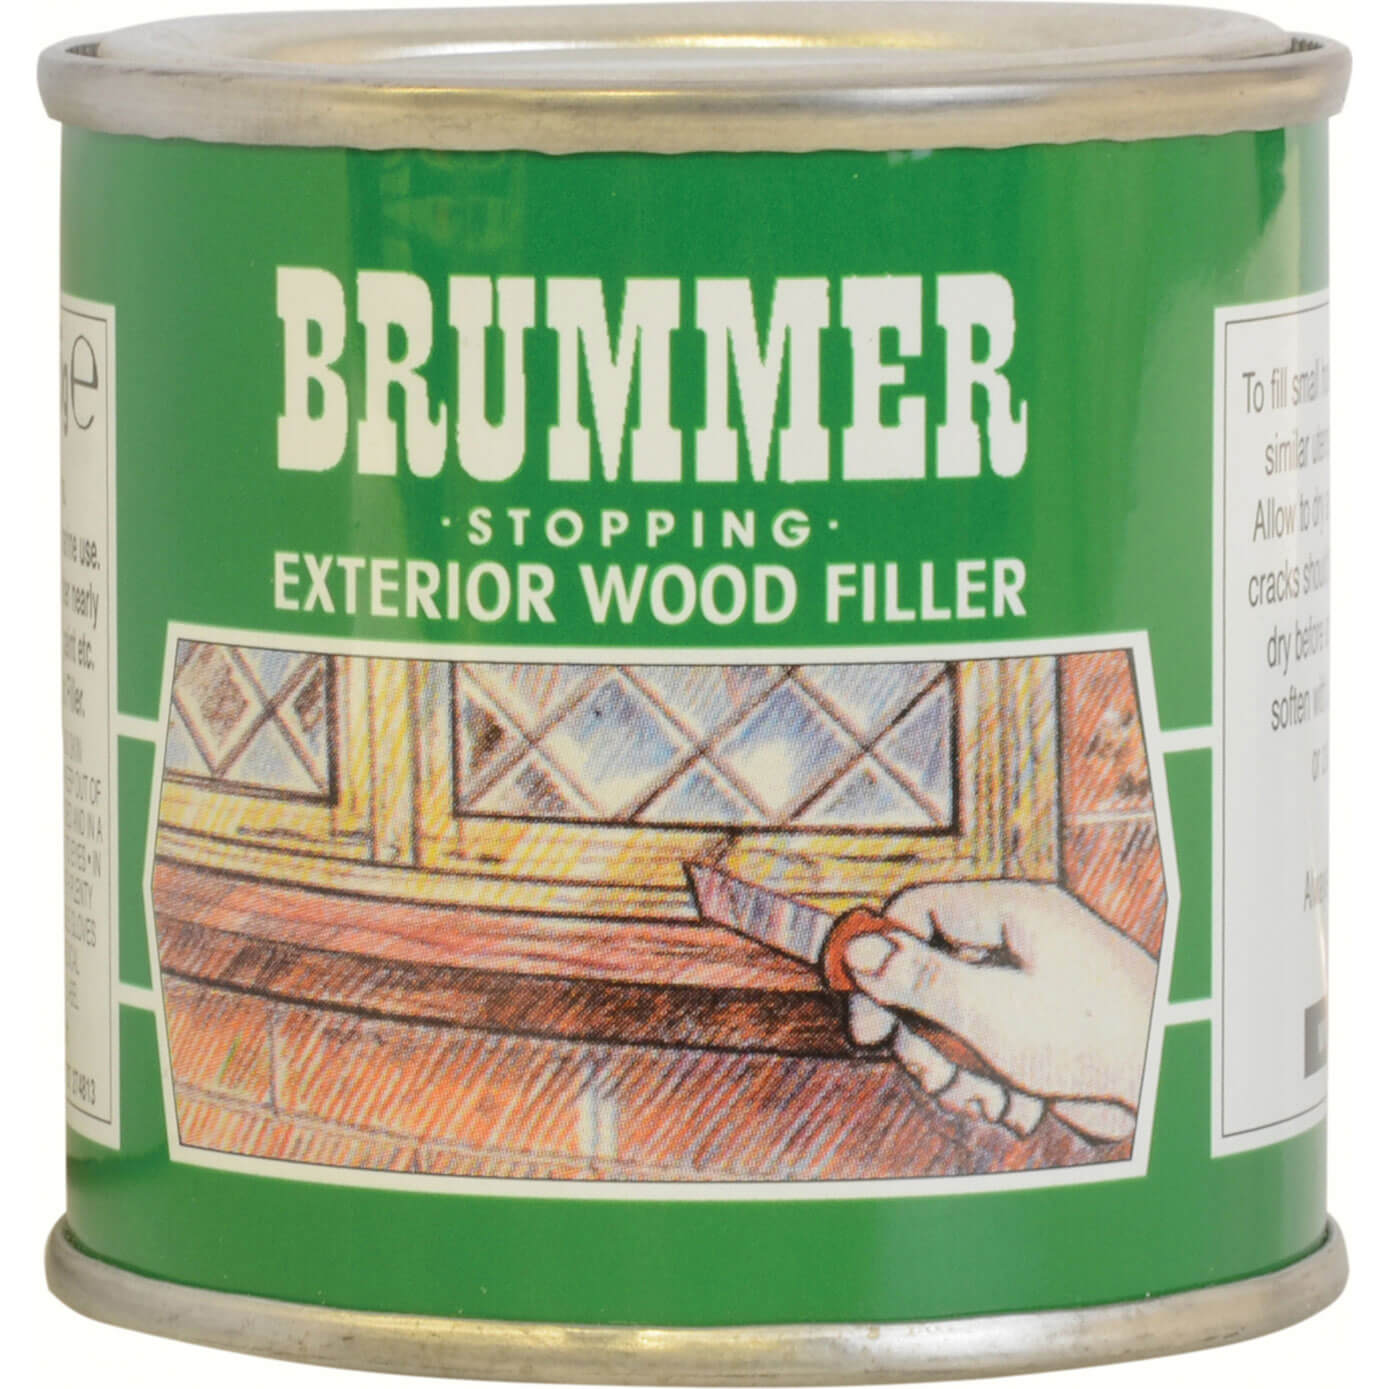 Image of Brummer Green Label Exterior Stopping Wood Filler Beech 225g